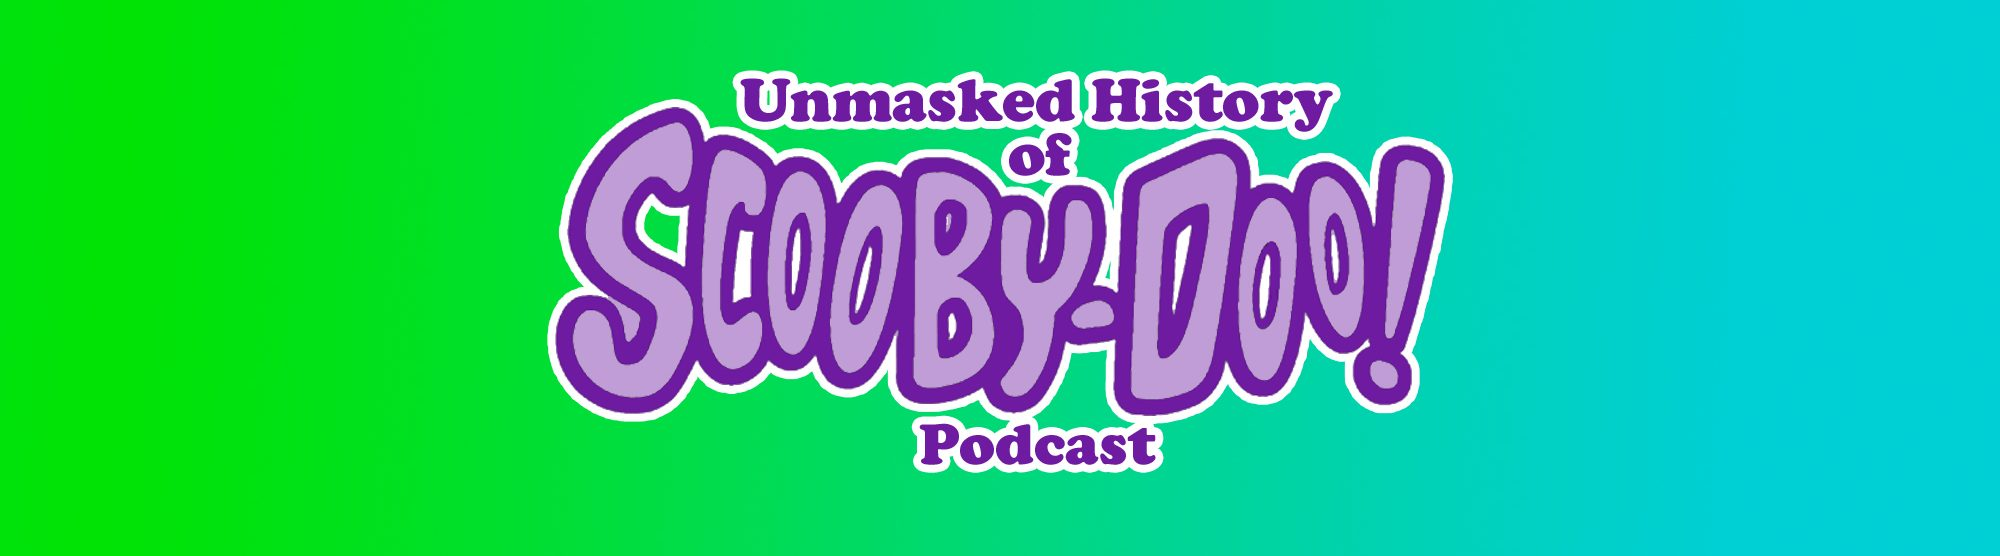 Unmasked History of Scooby Doo Podcast